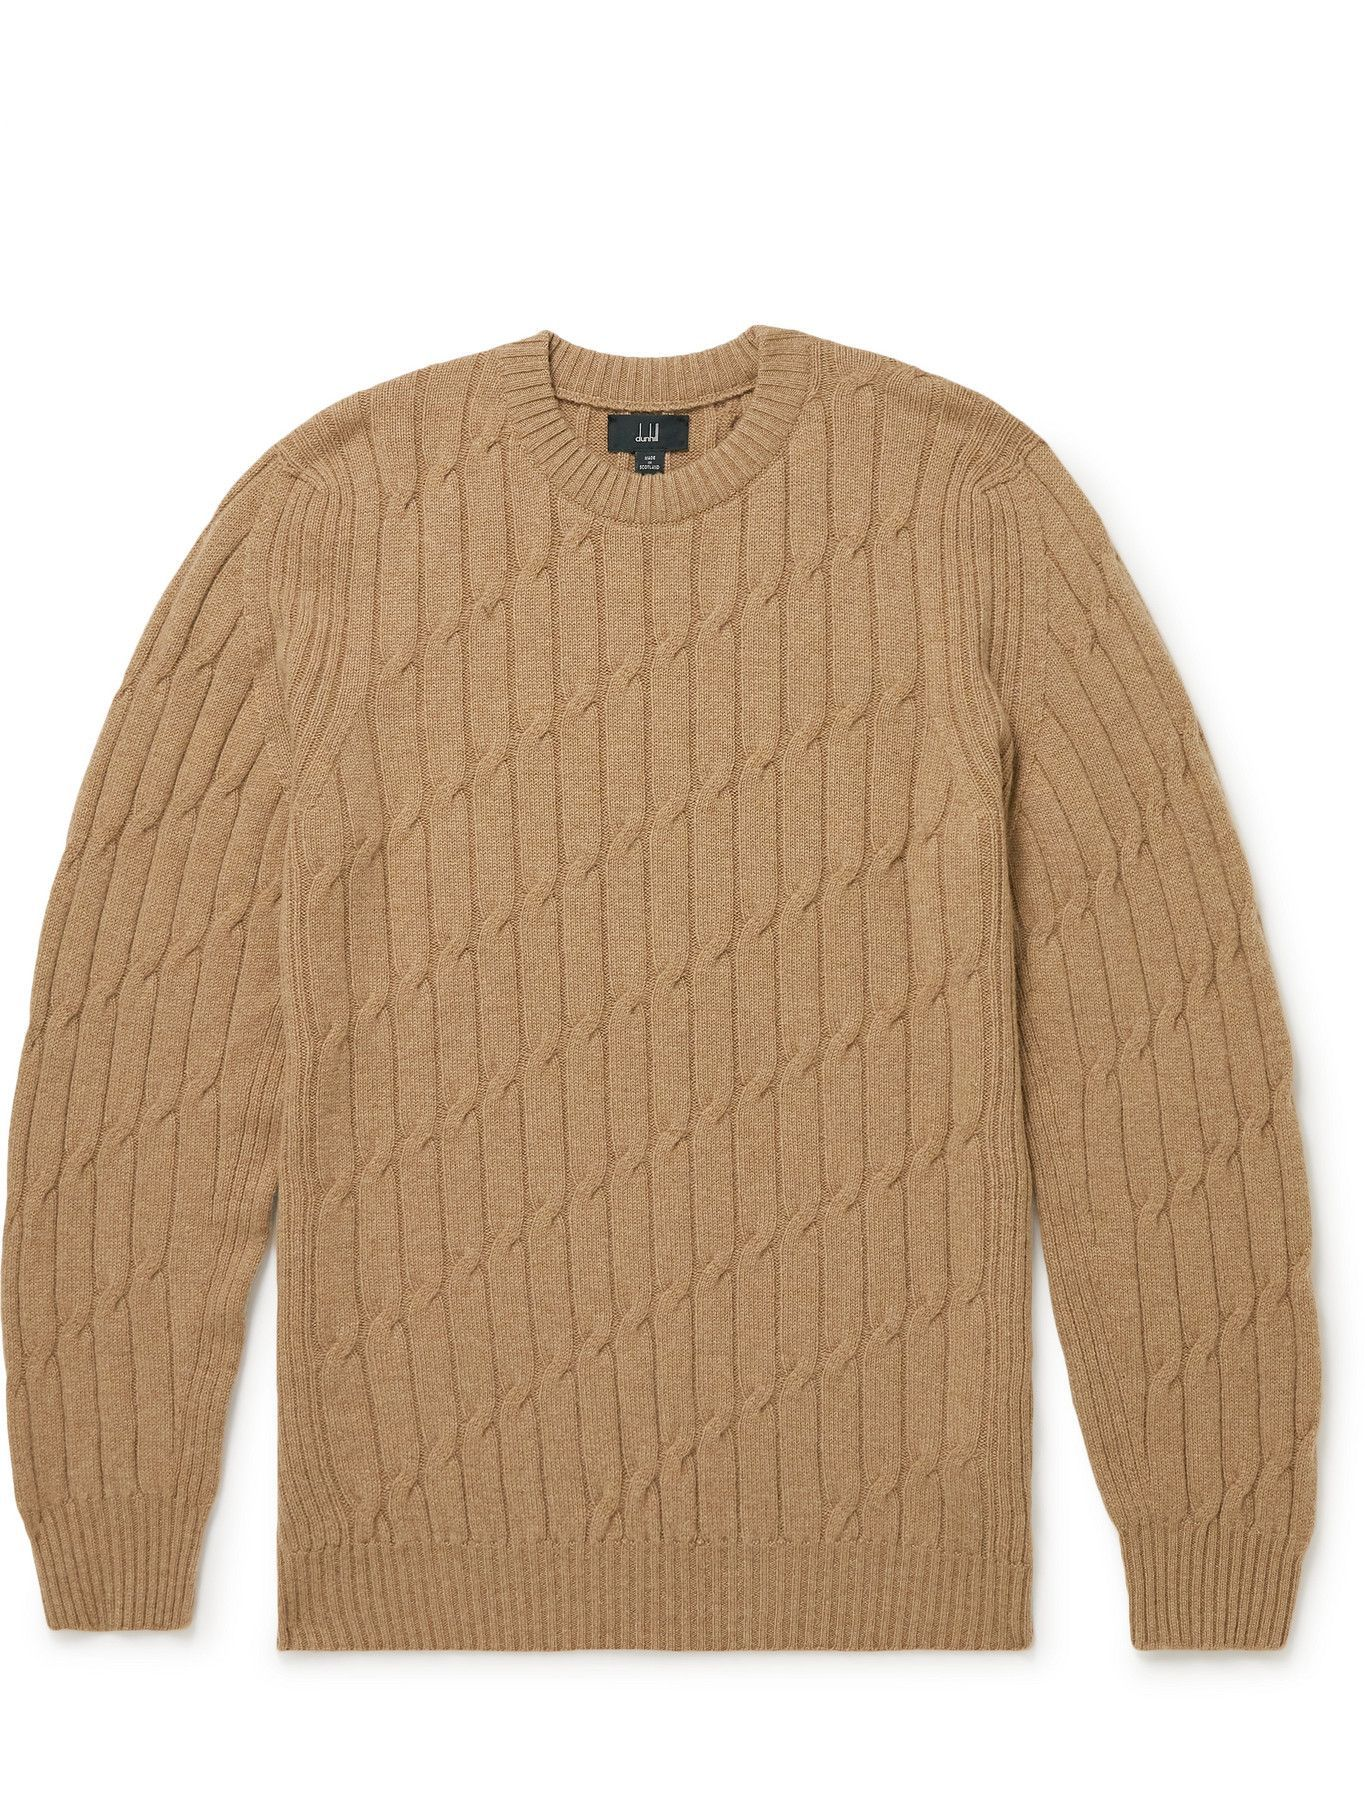 Dunhill - Cable-Knit Cashmere Sweater - Brown